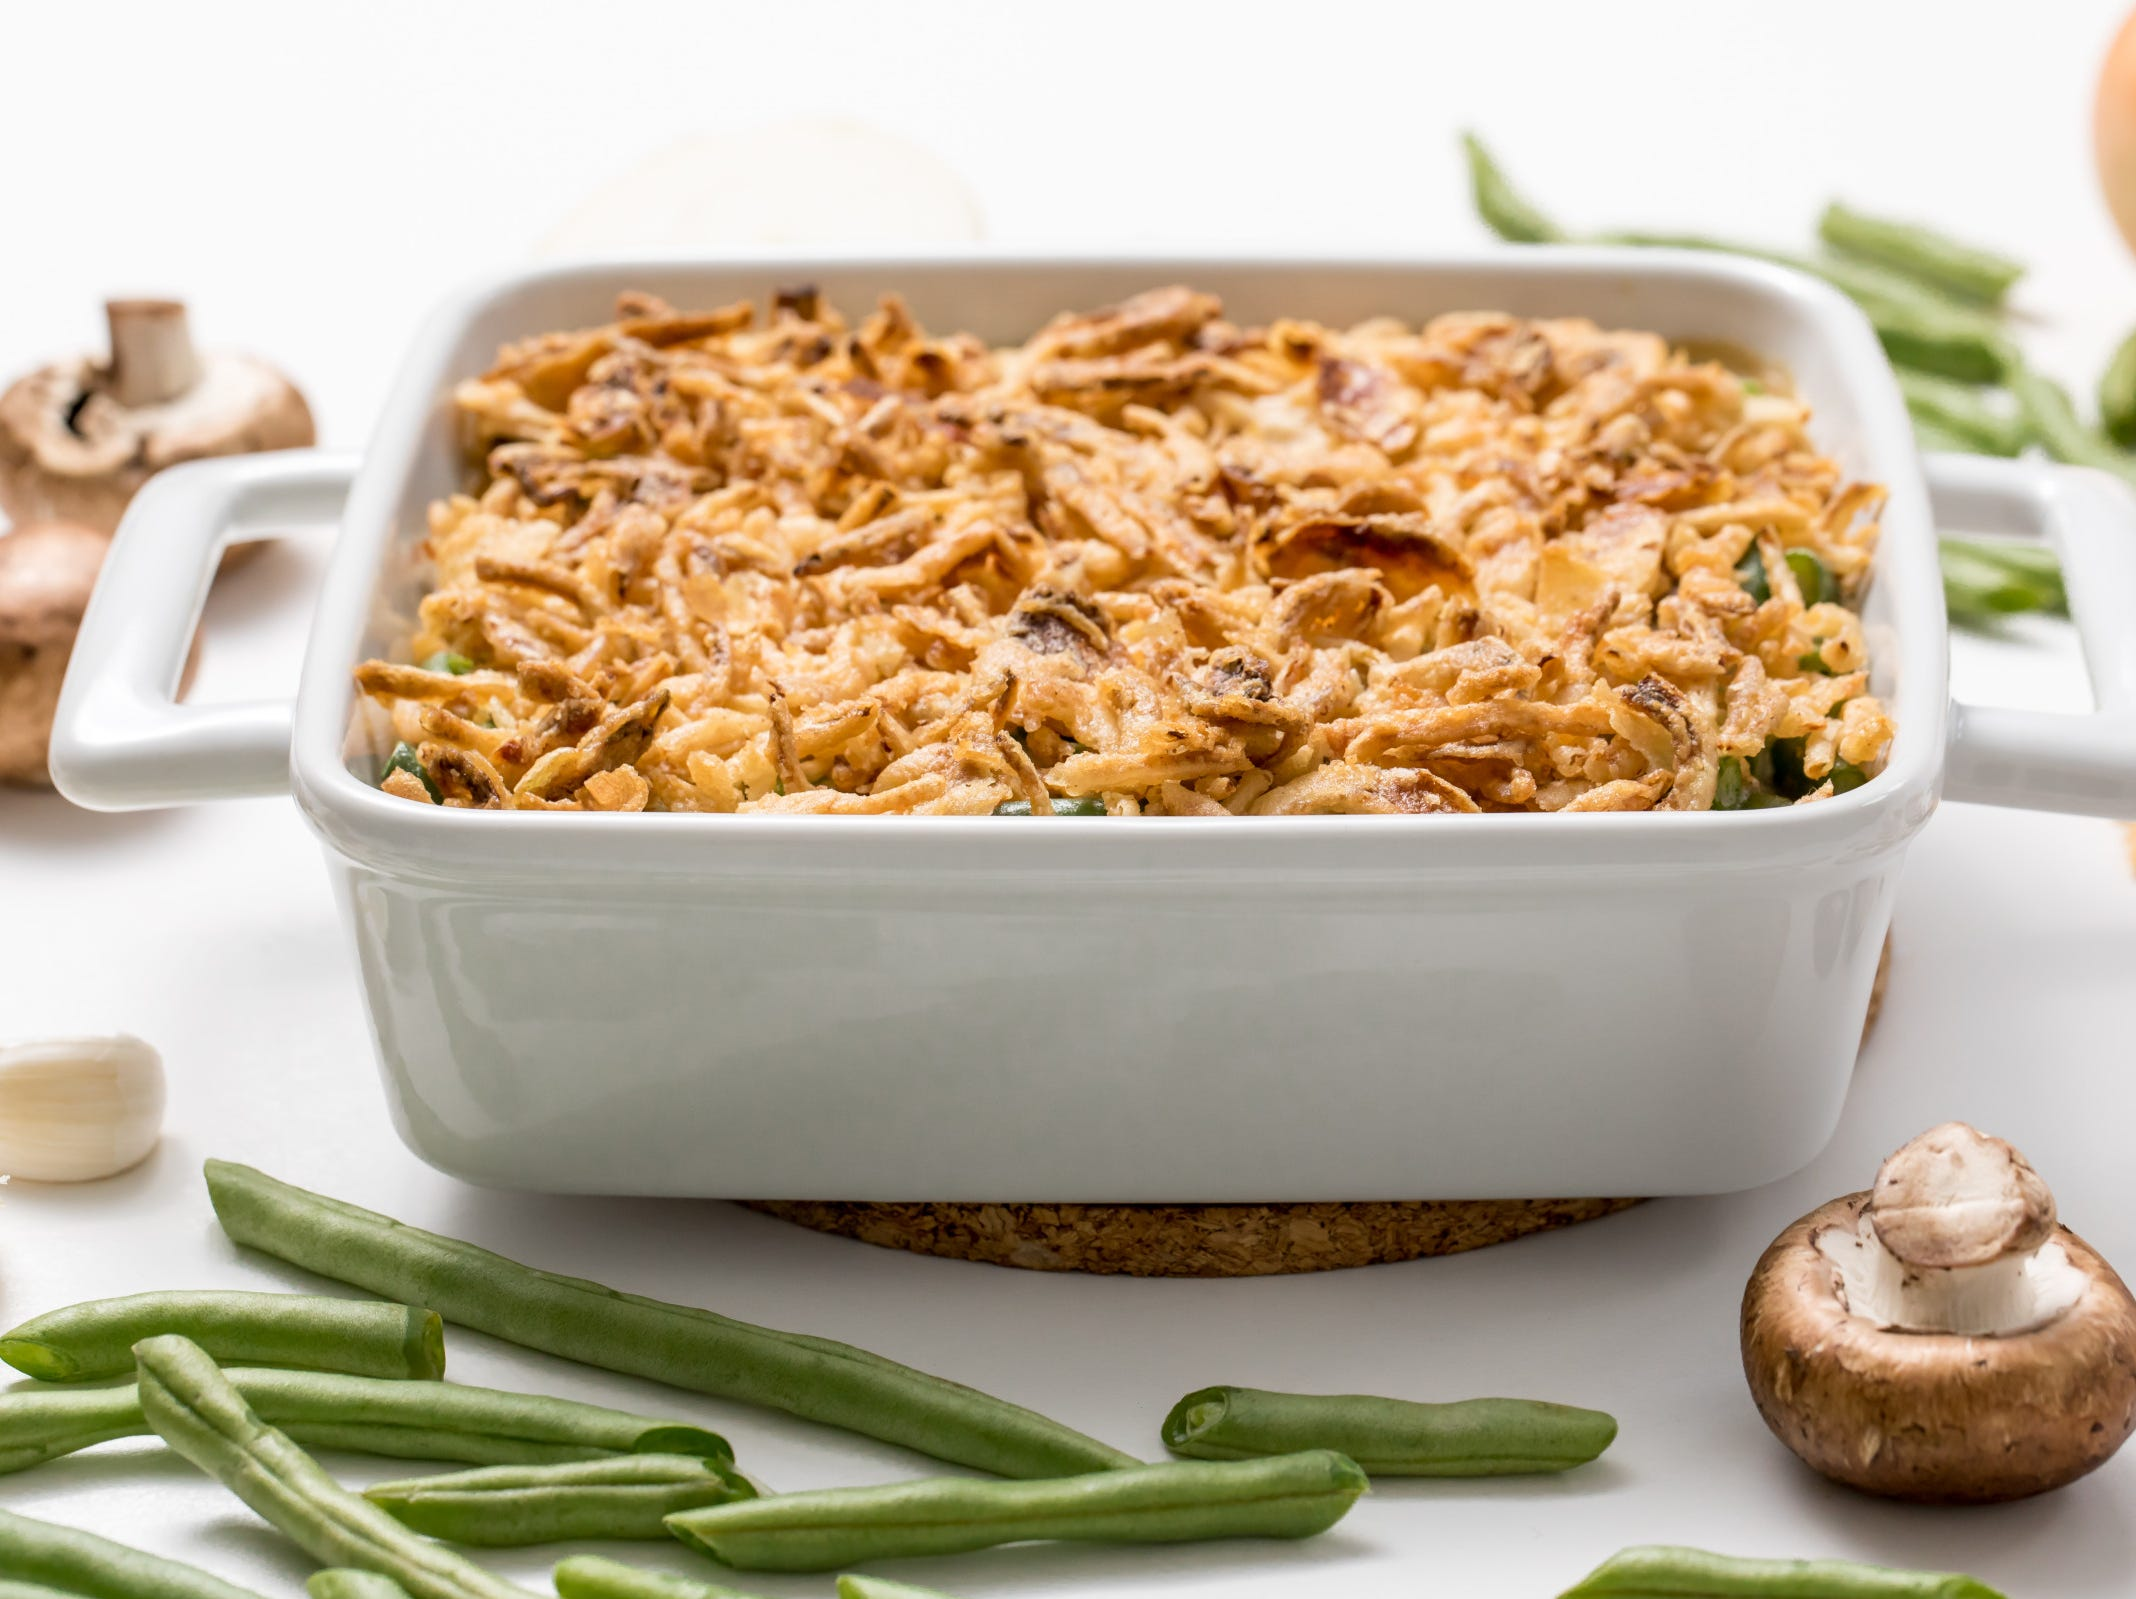 Shake up your Thanksgiving green bean casserole tradition by putting our creamiest green bean casserole ever, inspired by Budget Bytes, on your table! Featuring a homemade mushroom sauce, our contemporary take on this classic comfort food dish will have your holiday guests lining up for seconds — and then asking for the recipe.